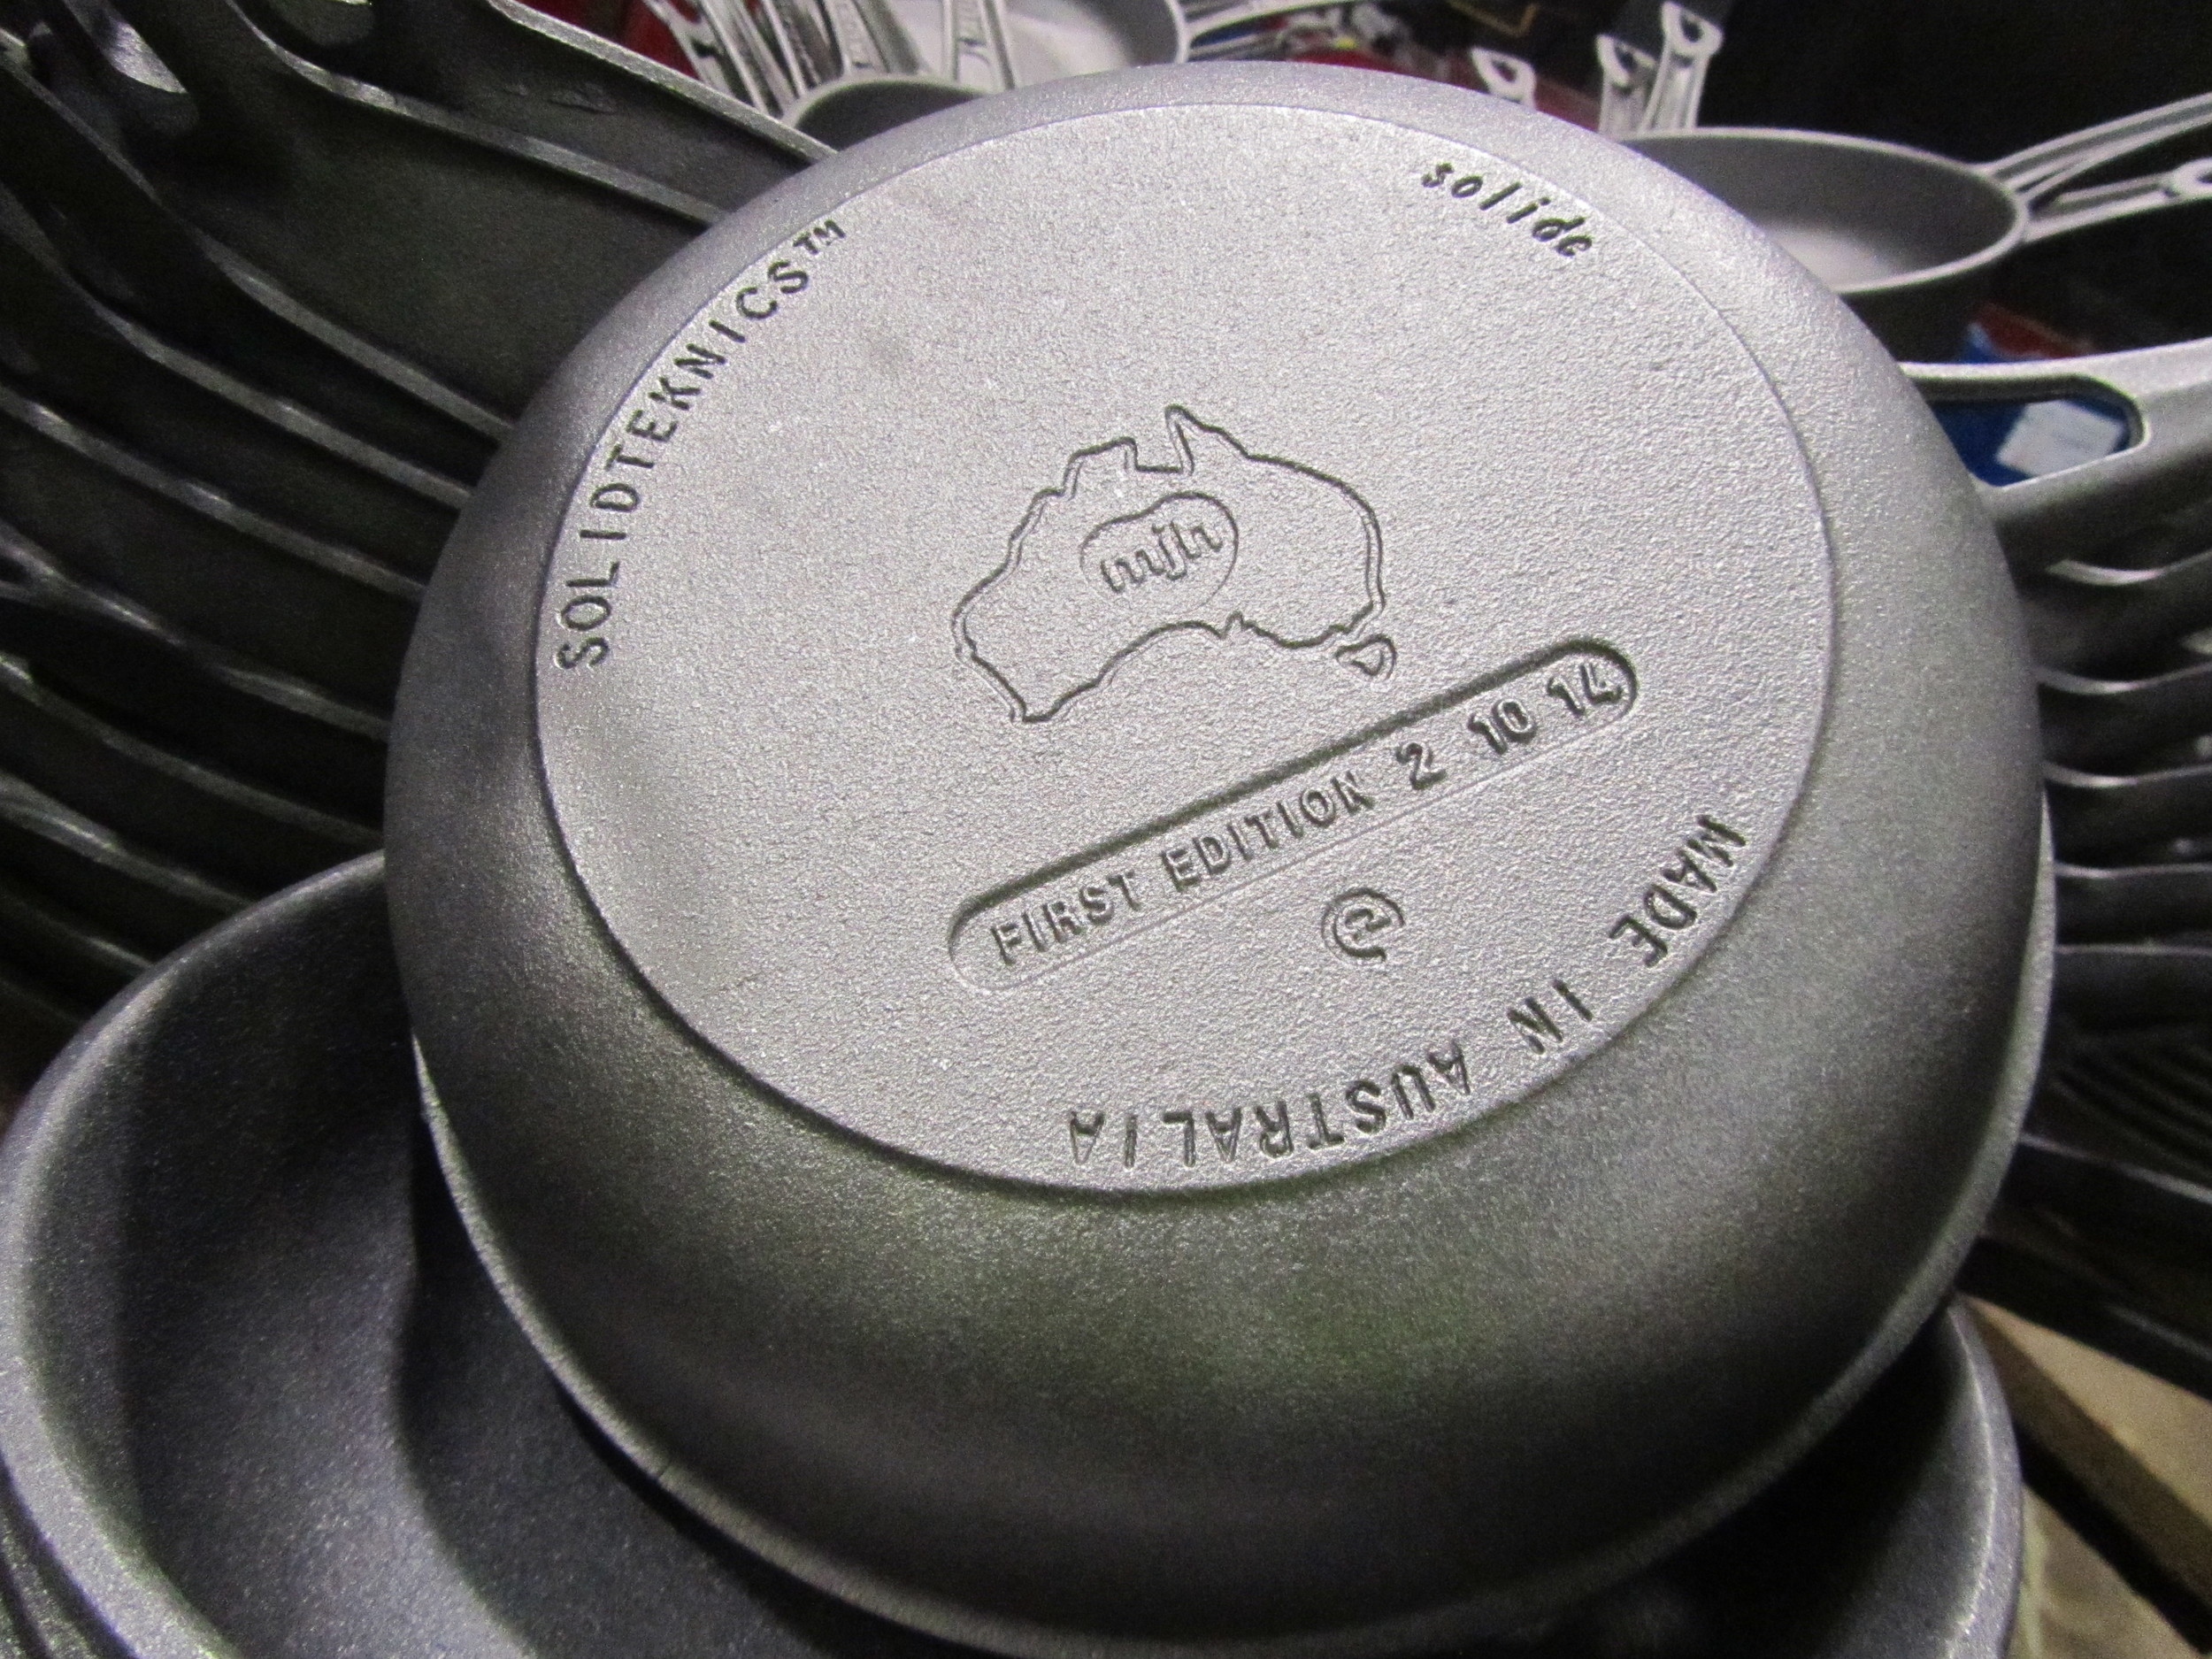 AUSfonte First Edition 2 10 14 Sauteuse pan by SOLIDTEKNICS.jpg